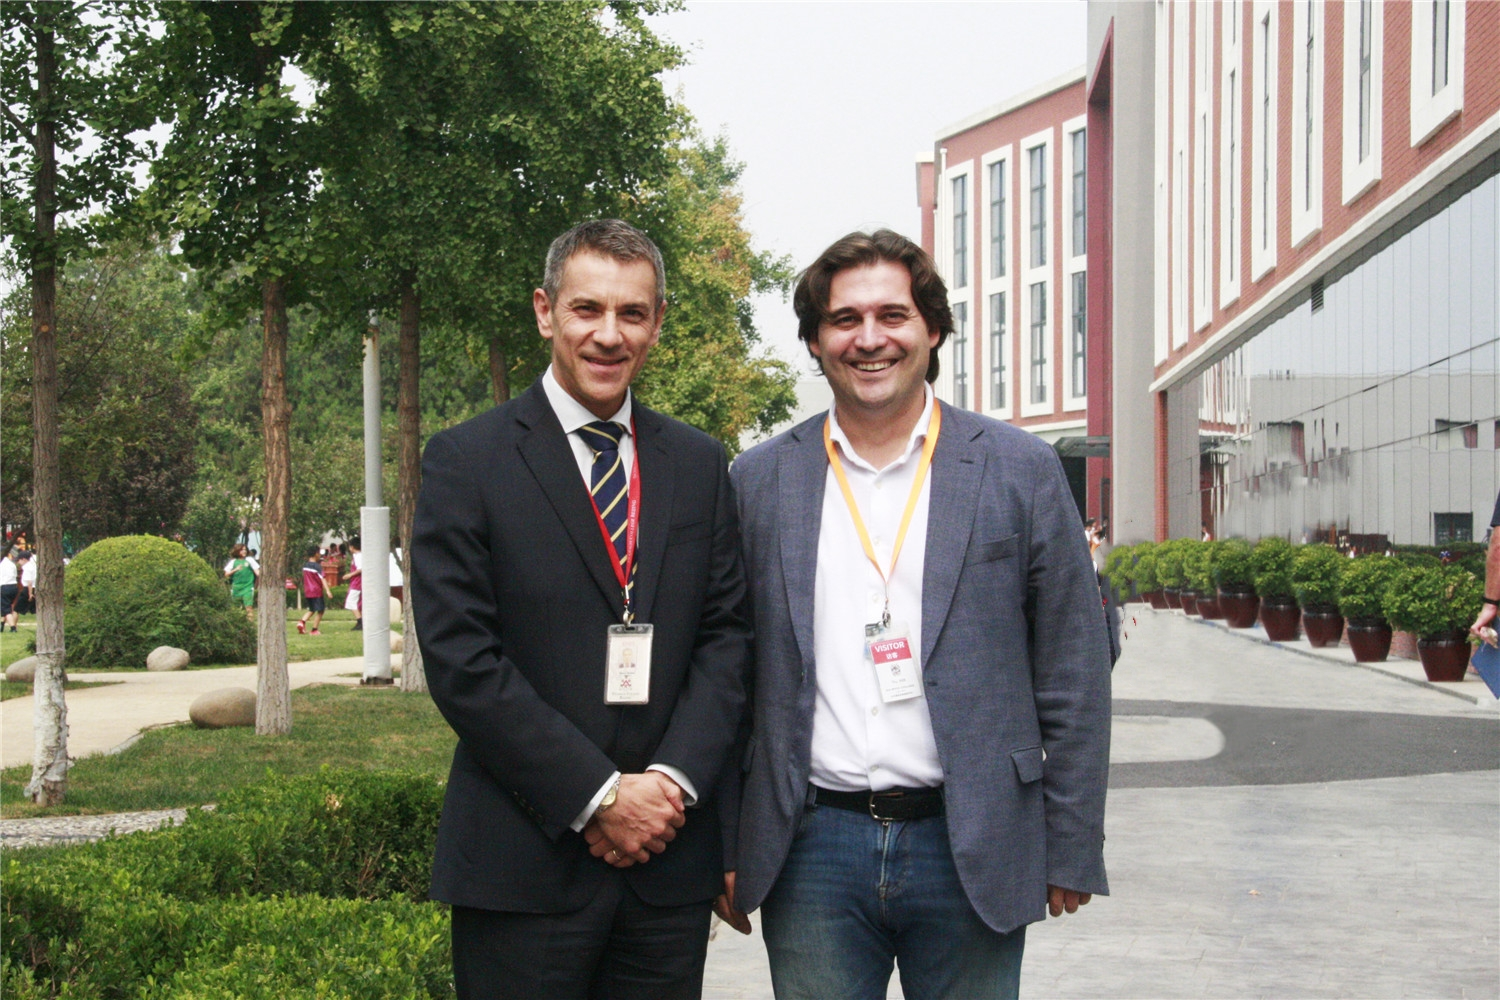 DCB Headmaster Mr Simon Herbert with Mr Pablo Mielgo